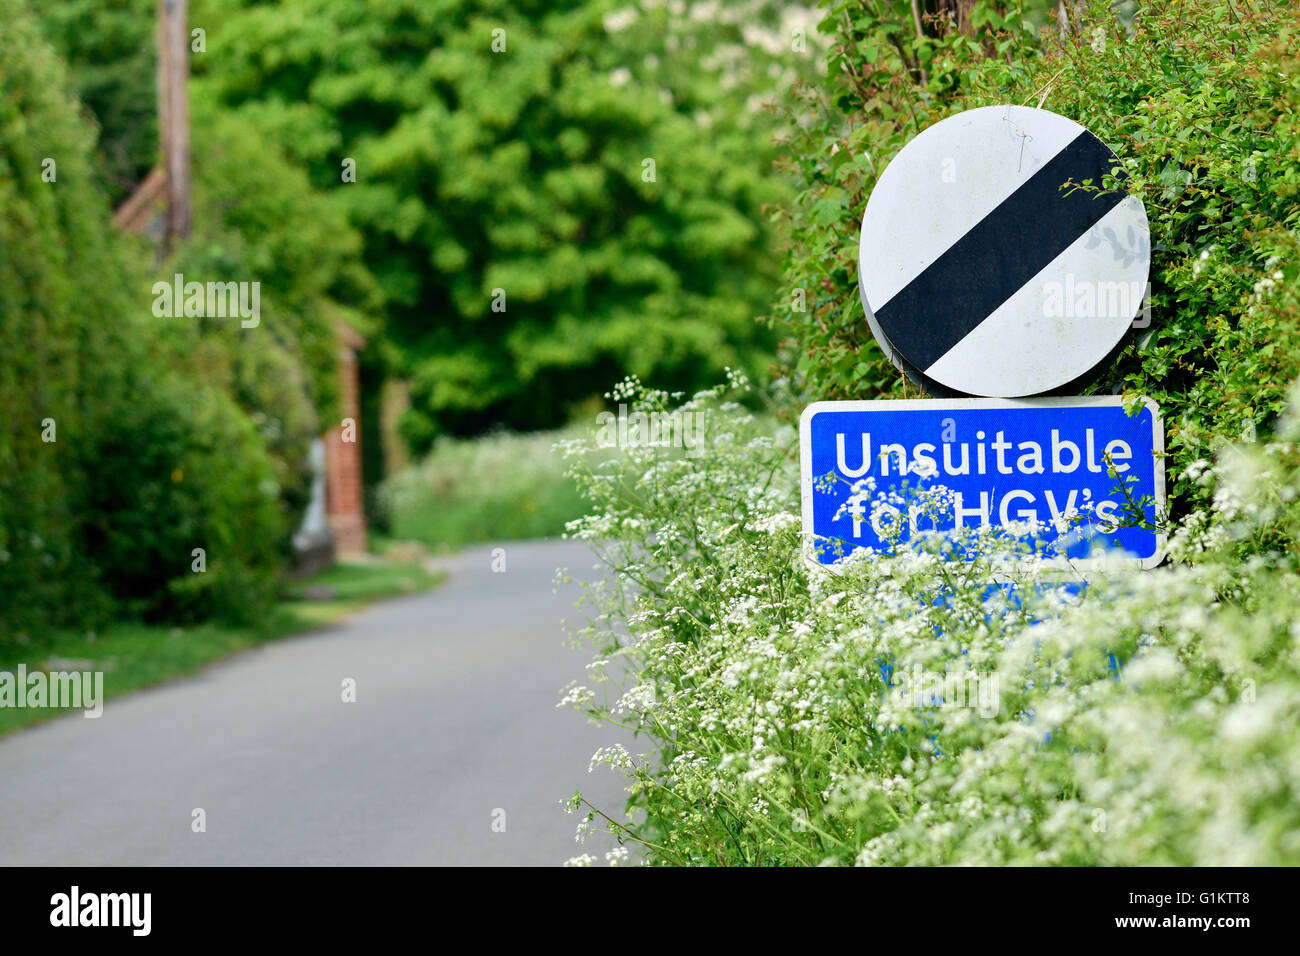 'Unsuitable for HGVs' sign on a country lane. Boughton Monchelsea village, Maidstone, Kent, UK. - Stock Image